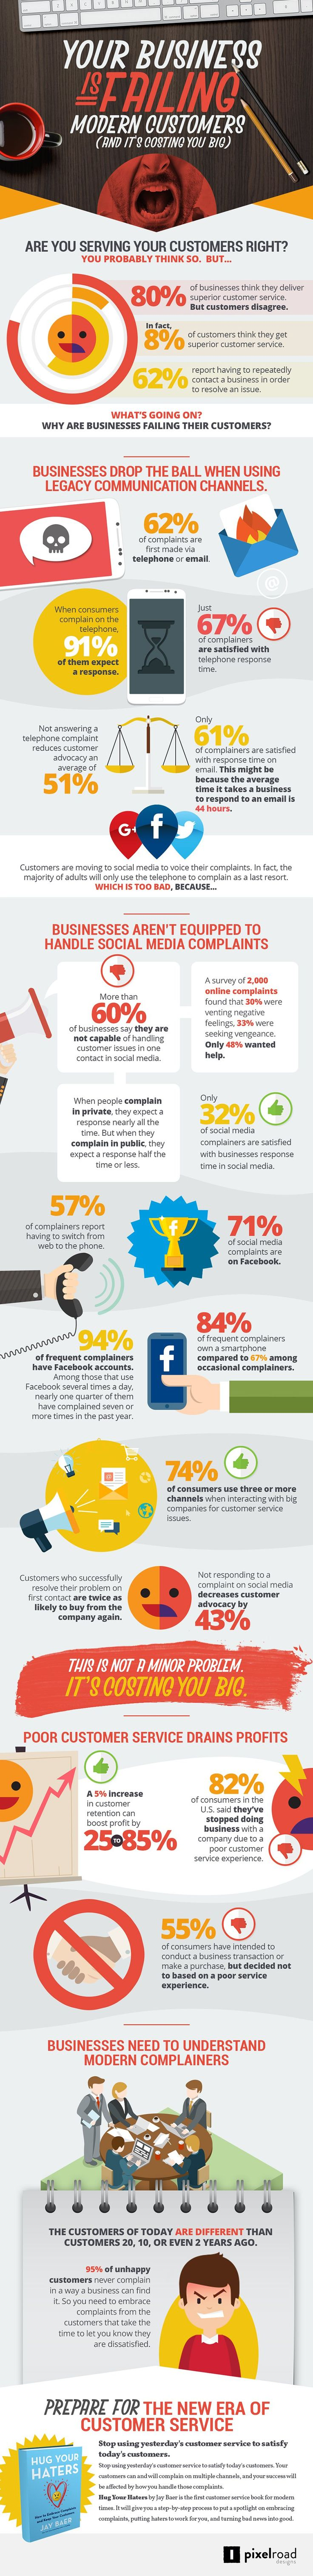 23 Statistics That Show Why Customer Service Mostly Sucks #Infographic #CustomerService #Marketing